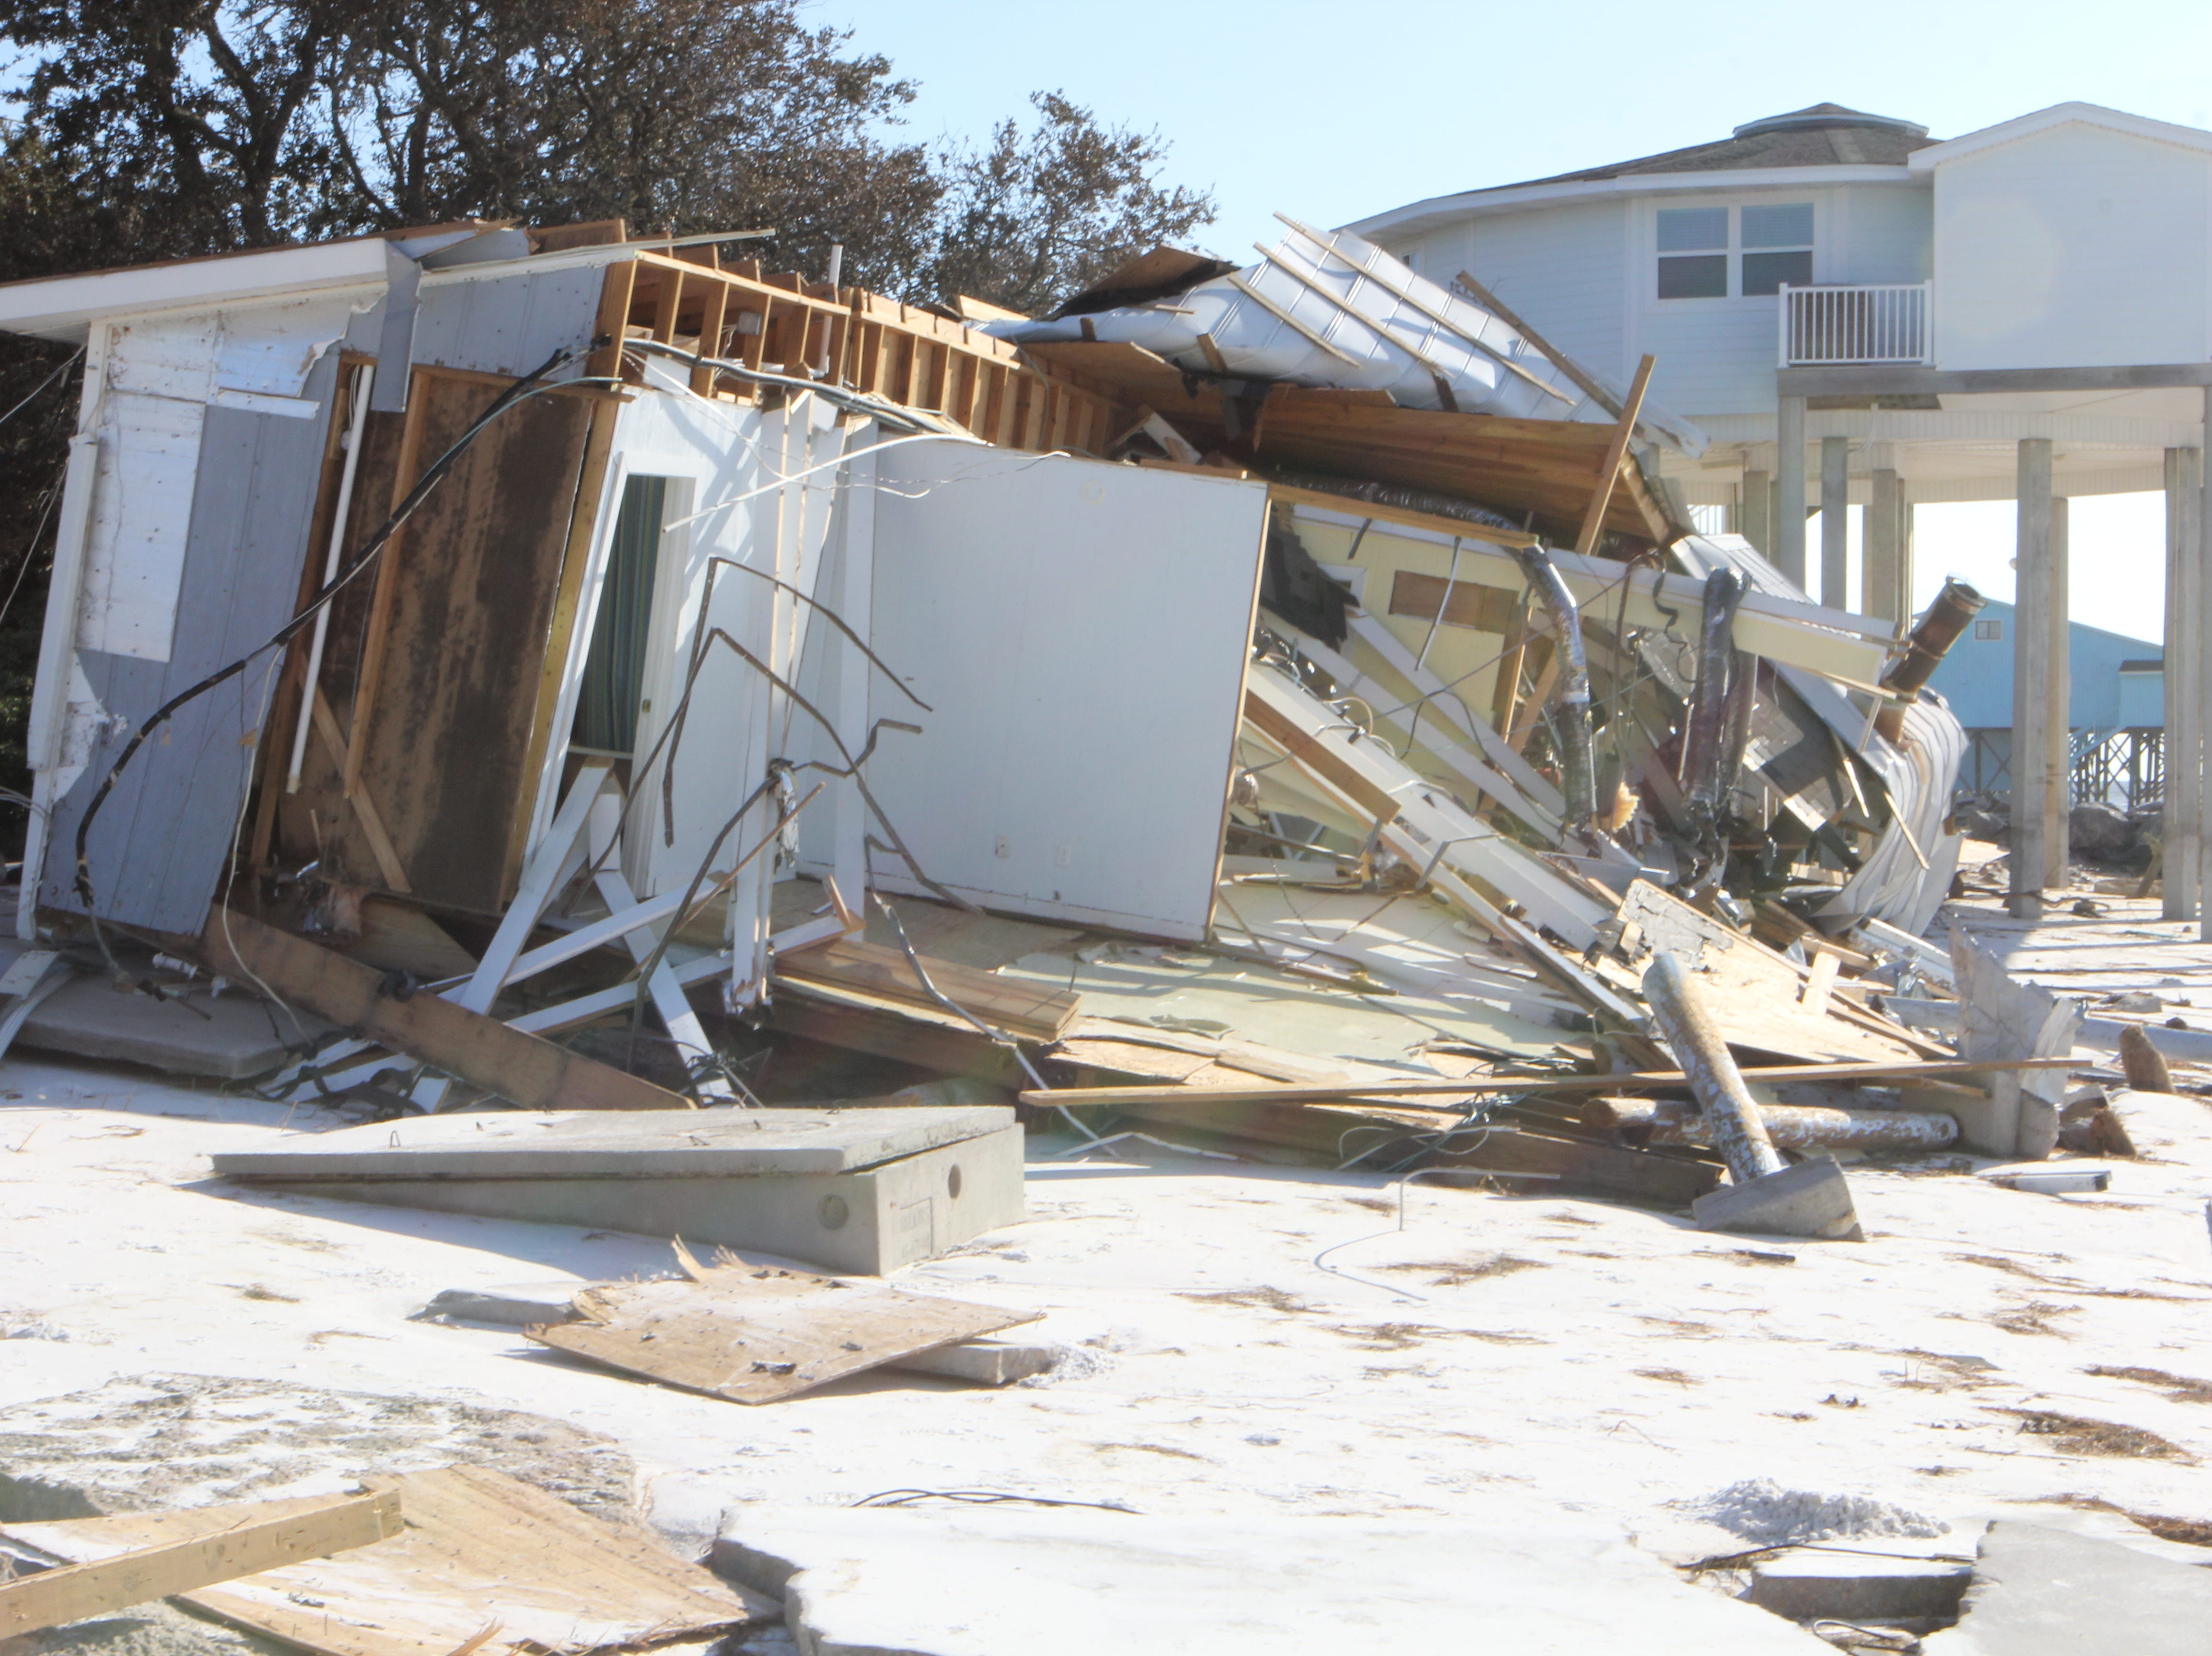 A destroyed house on Alligator Point after Hurricane Michael